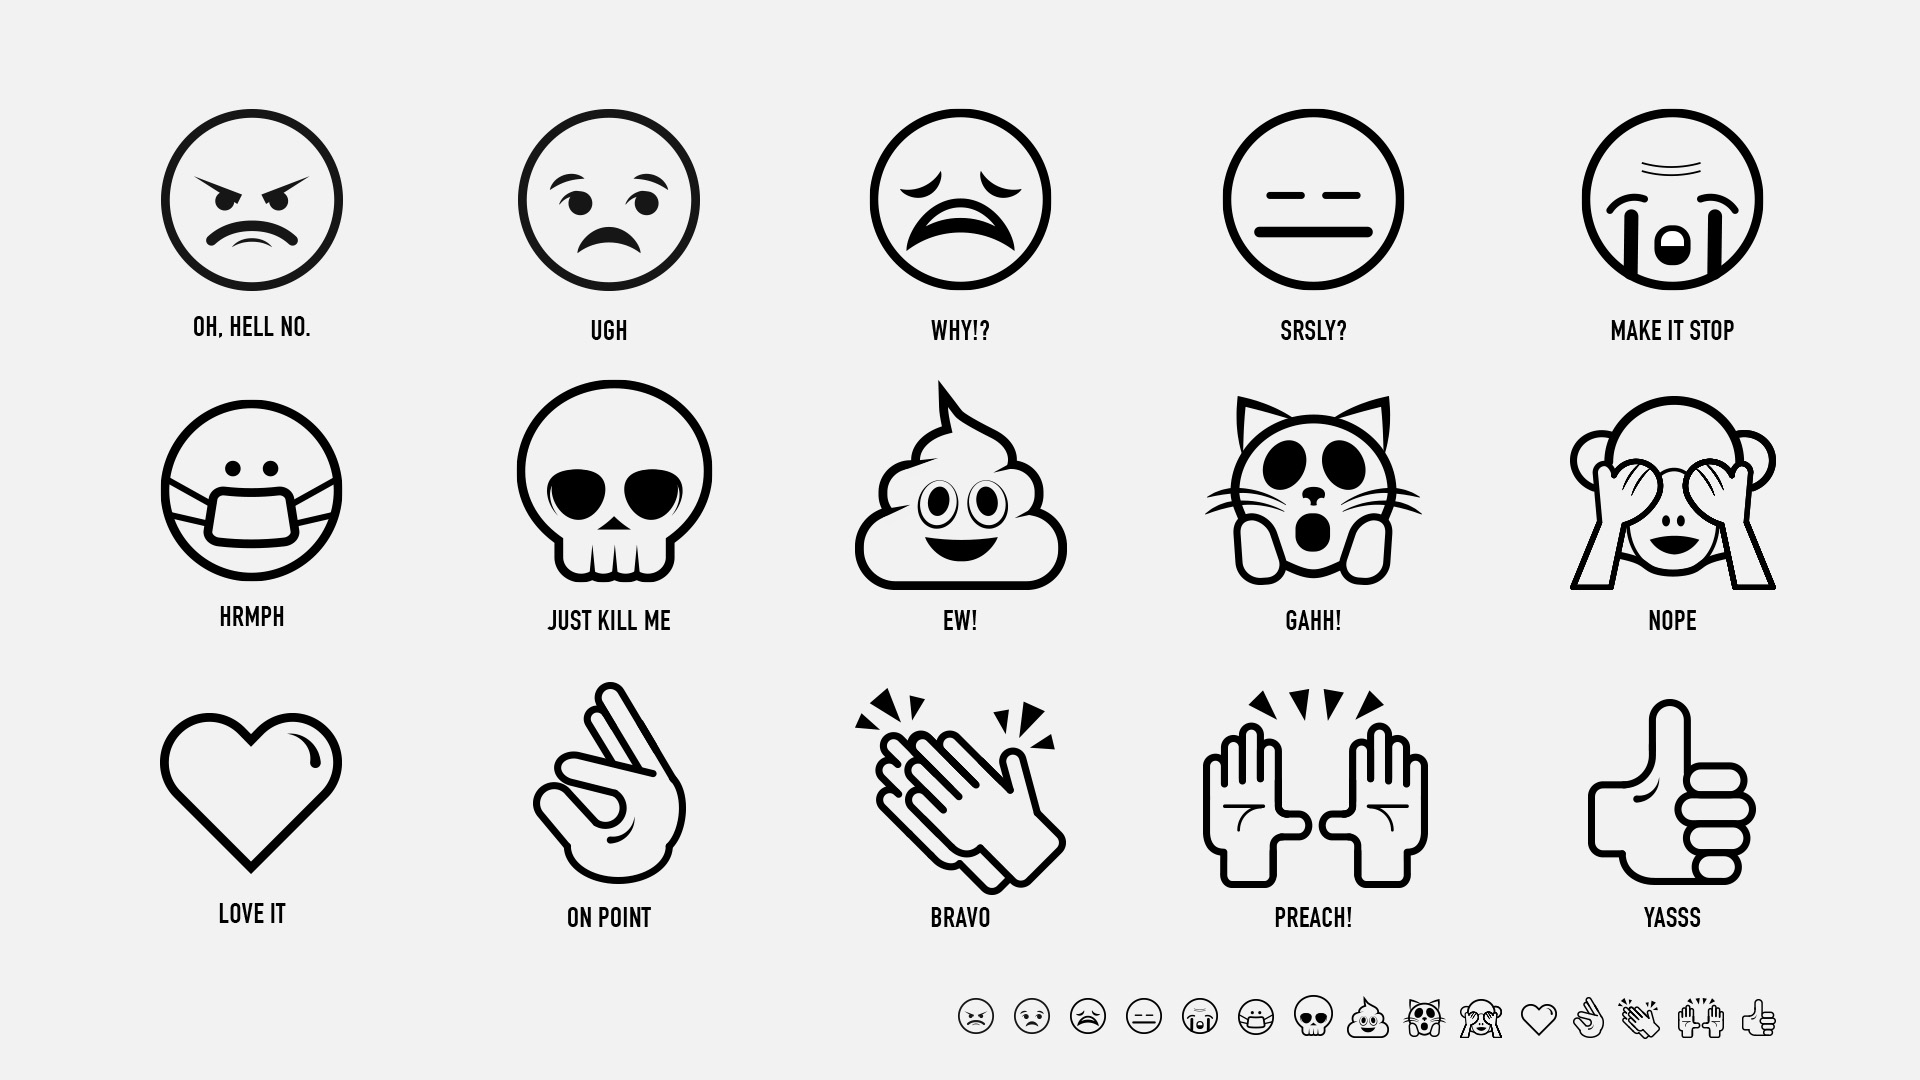 Visual treatment of emojis